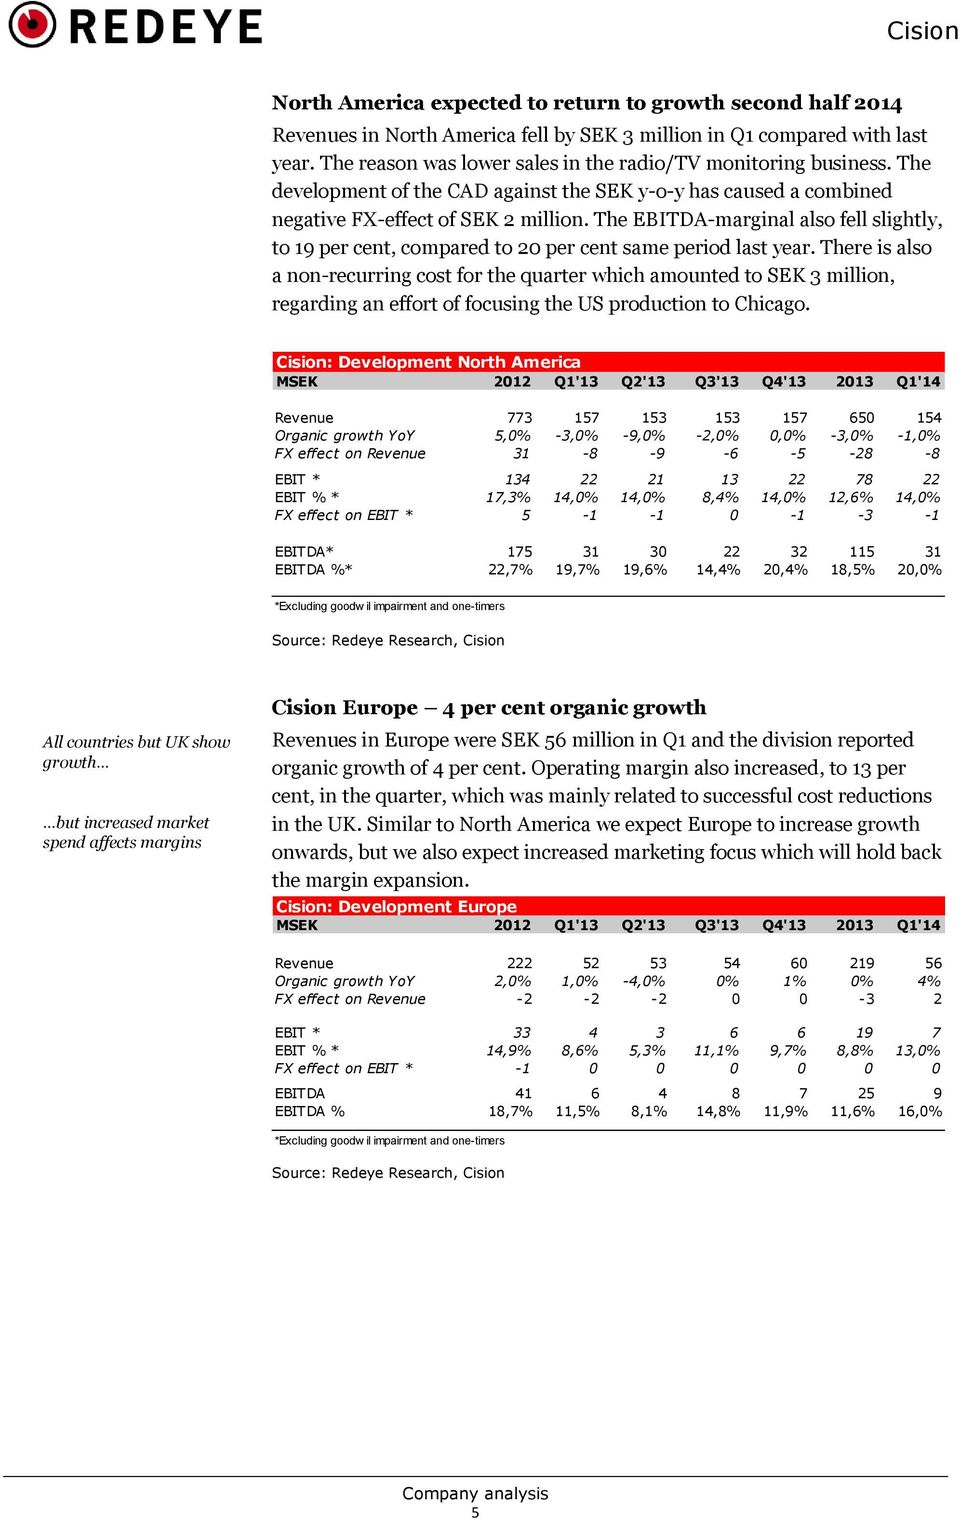 The EBITDA-marginal also fell slightly, to 19 per cent, compared to 20 per cent same period last year.